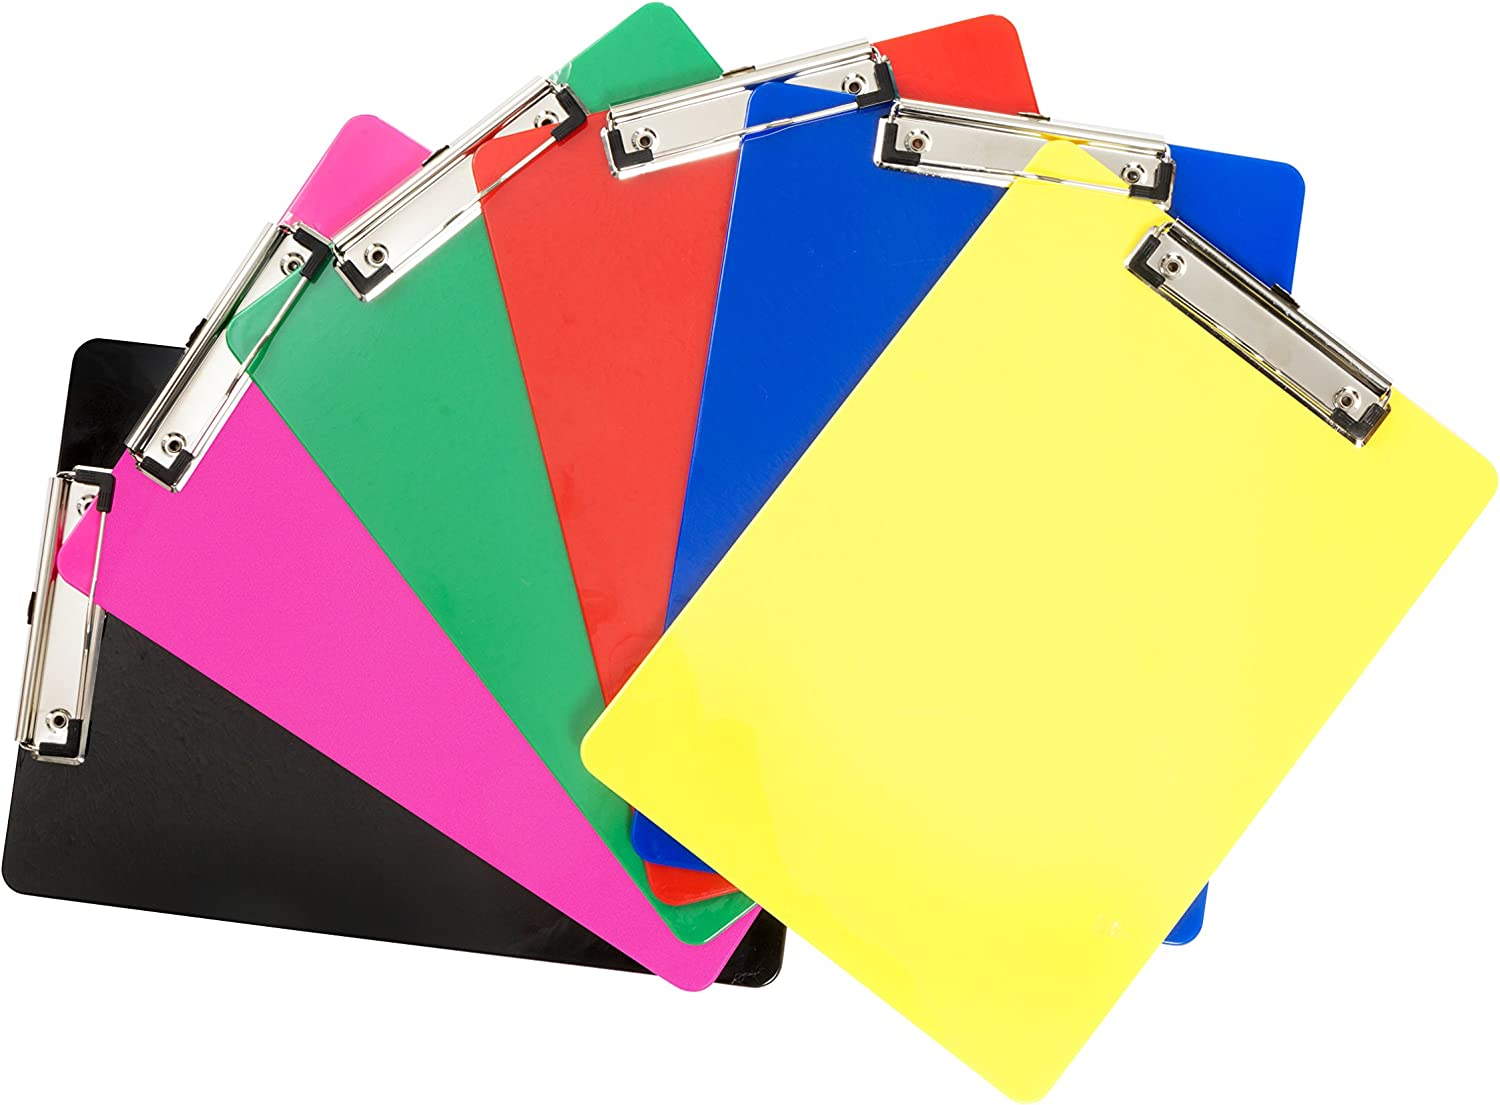 Plastic Colorful Clipboard,Pretty Cute Clipboard Memo Size Pocket Clip Boards 5x7 Inch A6 Clipboards for classrooms Restaurants Doctor Offices Set of 5 Offices